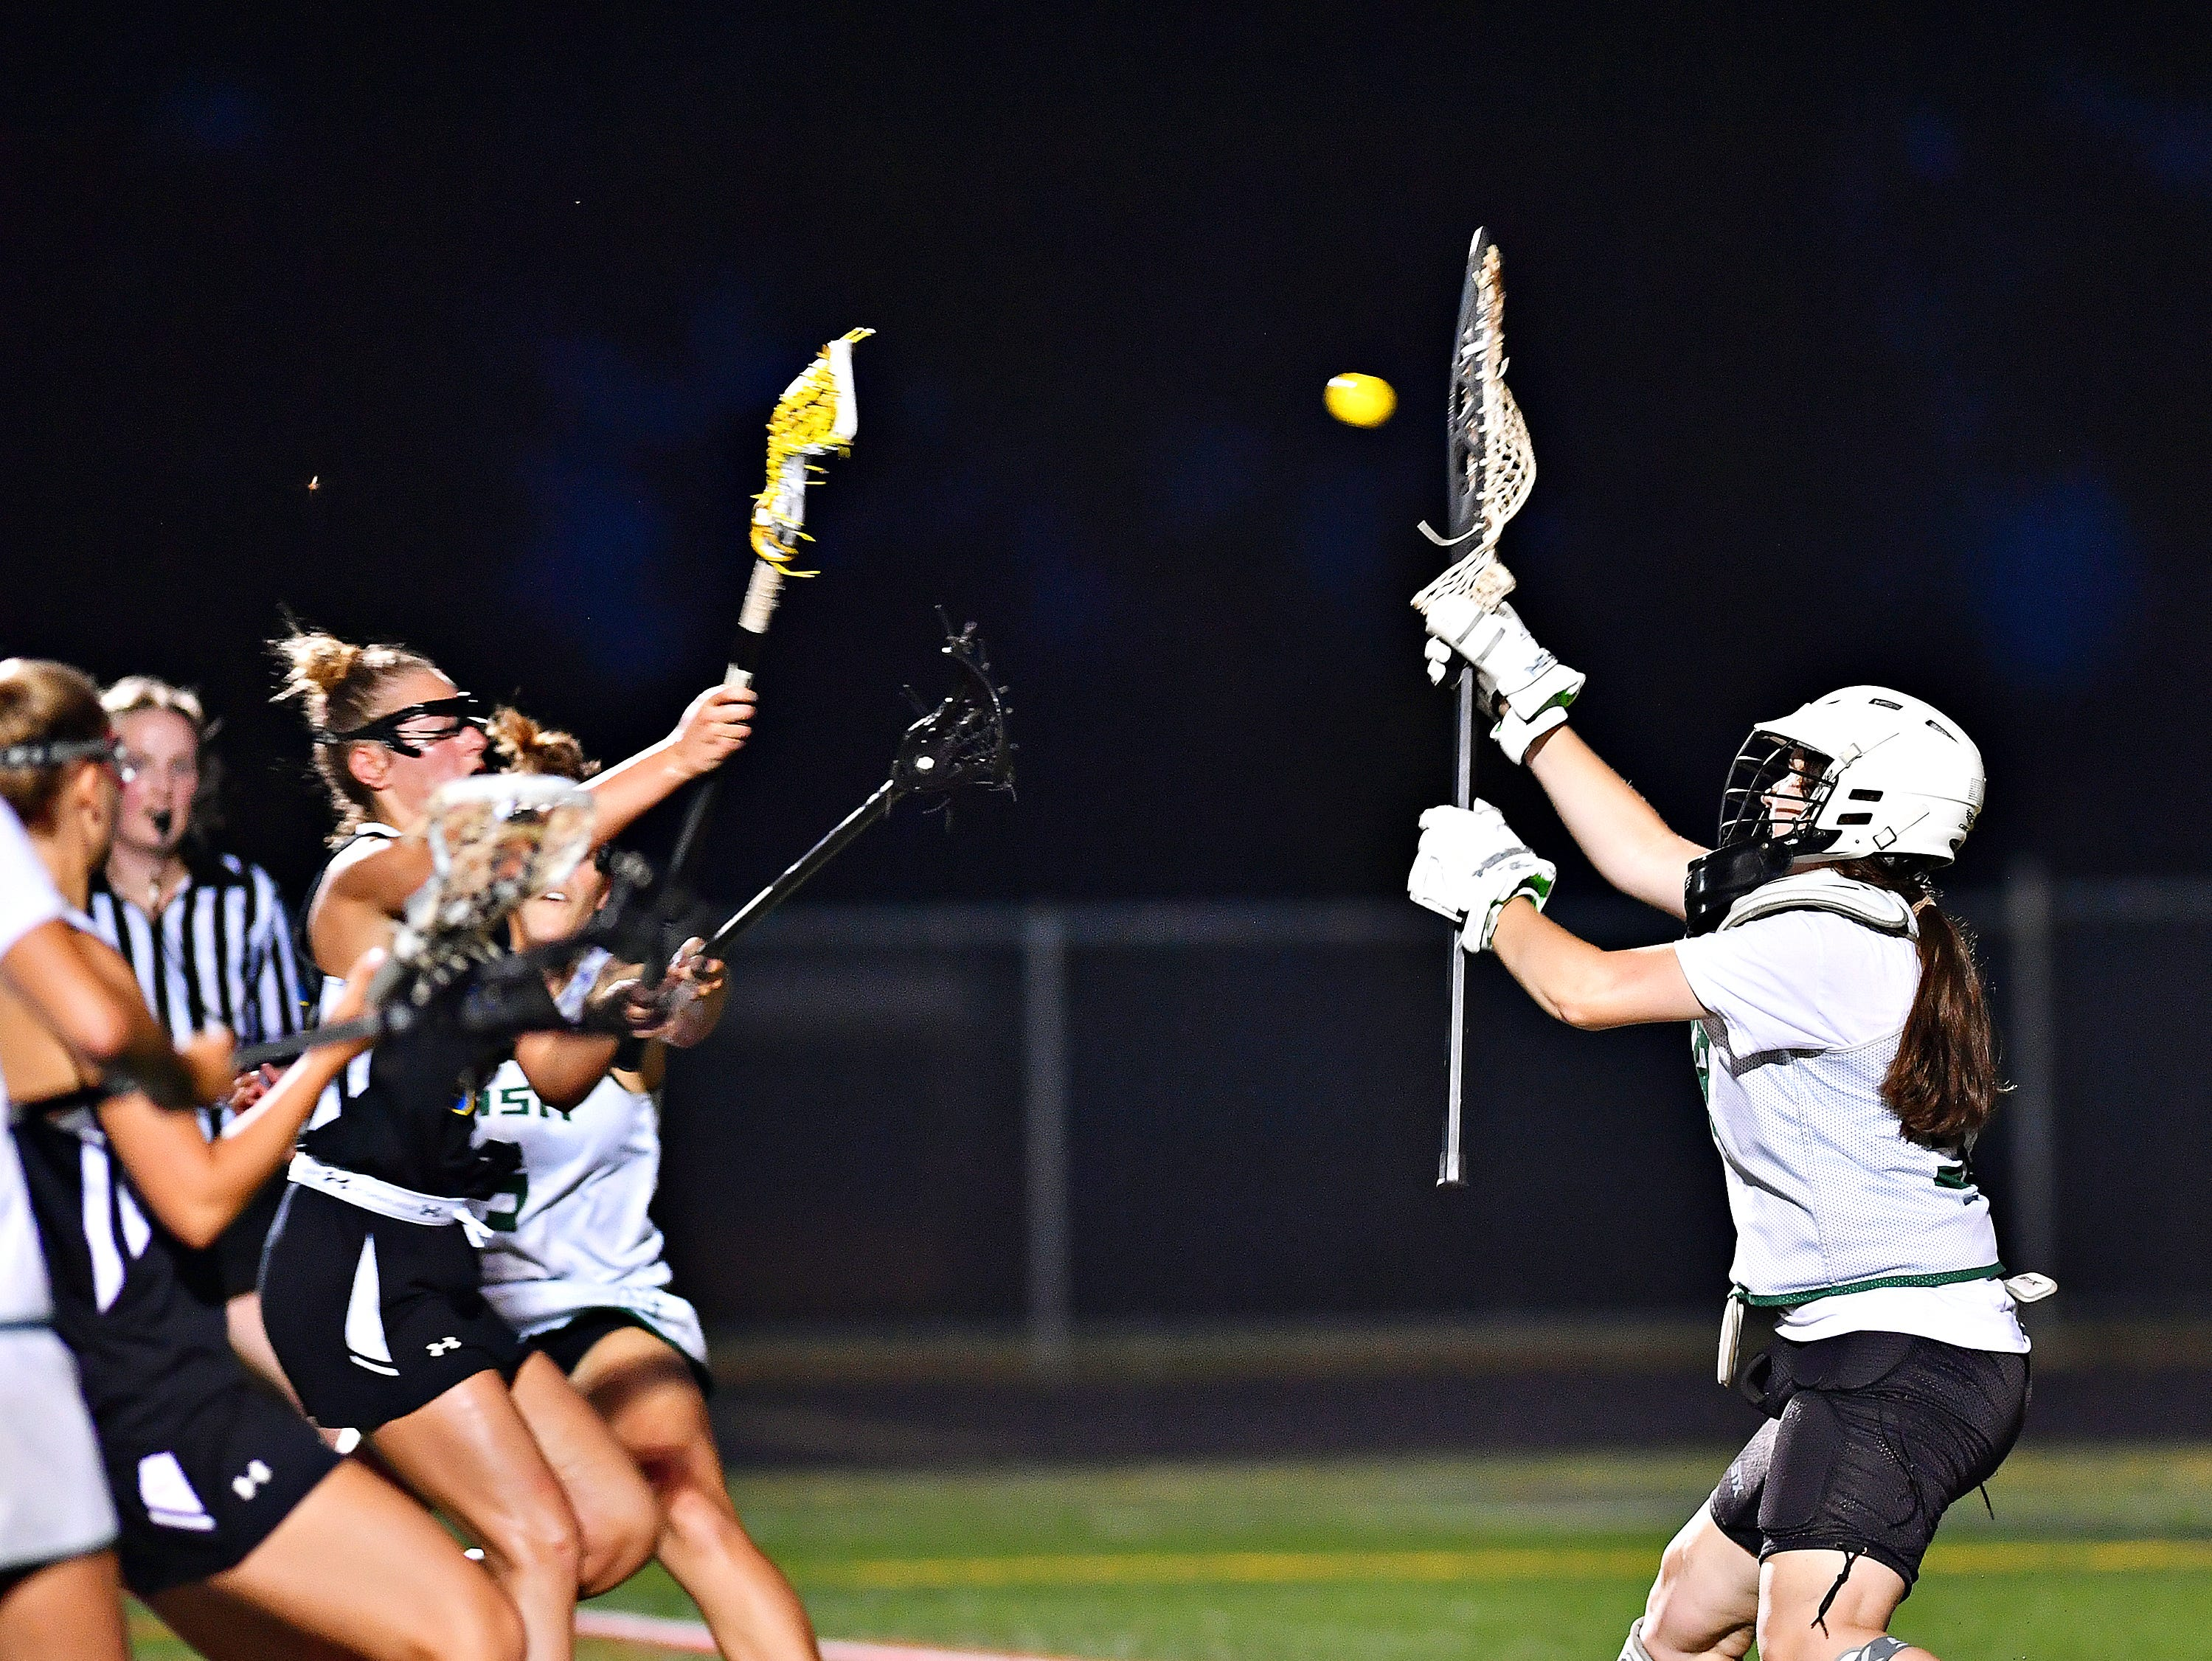 Kennard-Dale vs York Catholic during girls' lacrosse championship action at Eastern York Senior High School in Wrightsville, Friday, May 10, 2019. Kennard-Dale would win the title game 11-10. Dawn J. Sagert photo